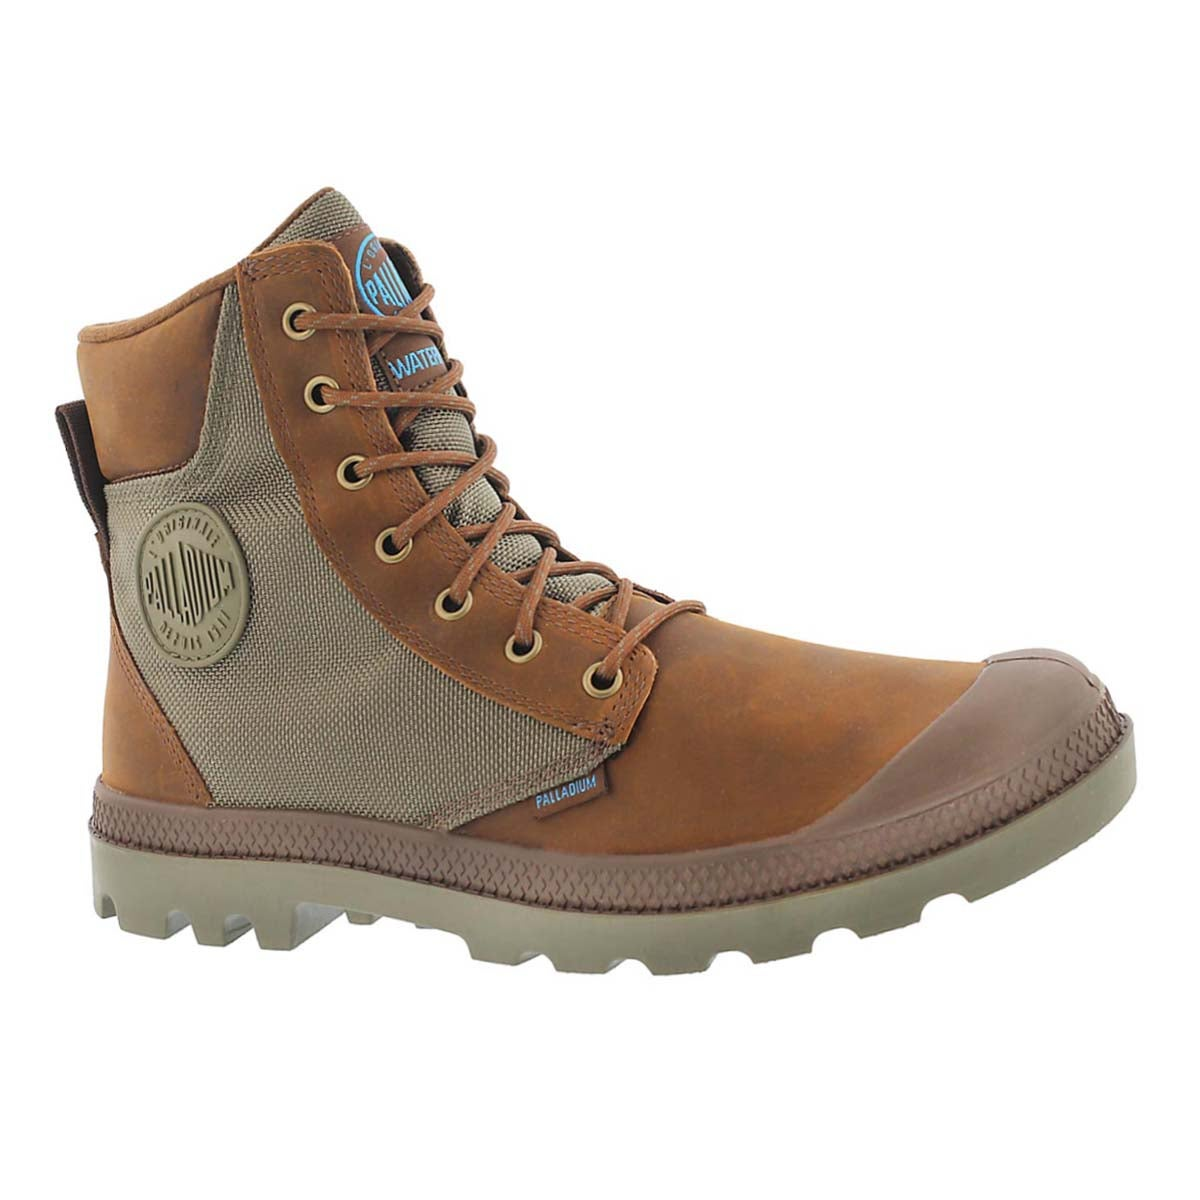 4f5a7181b02 Men's PAMPA SPORT CUFF brown waterproof boots